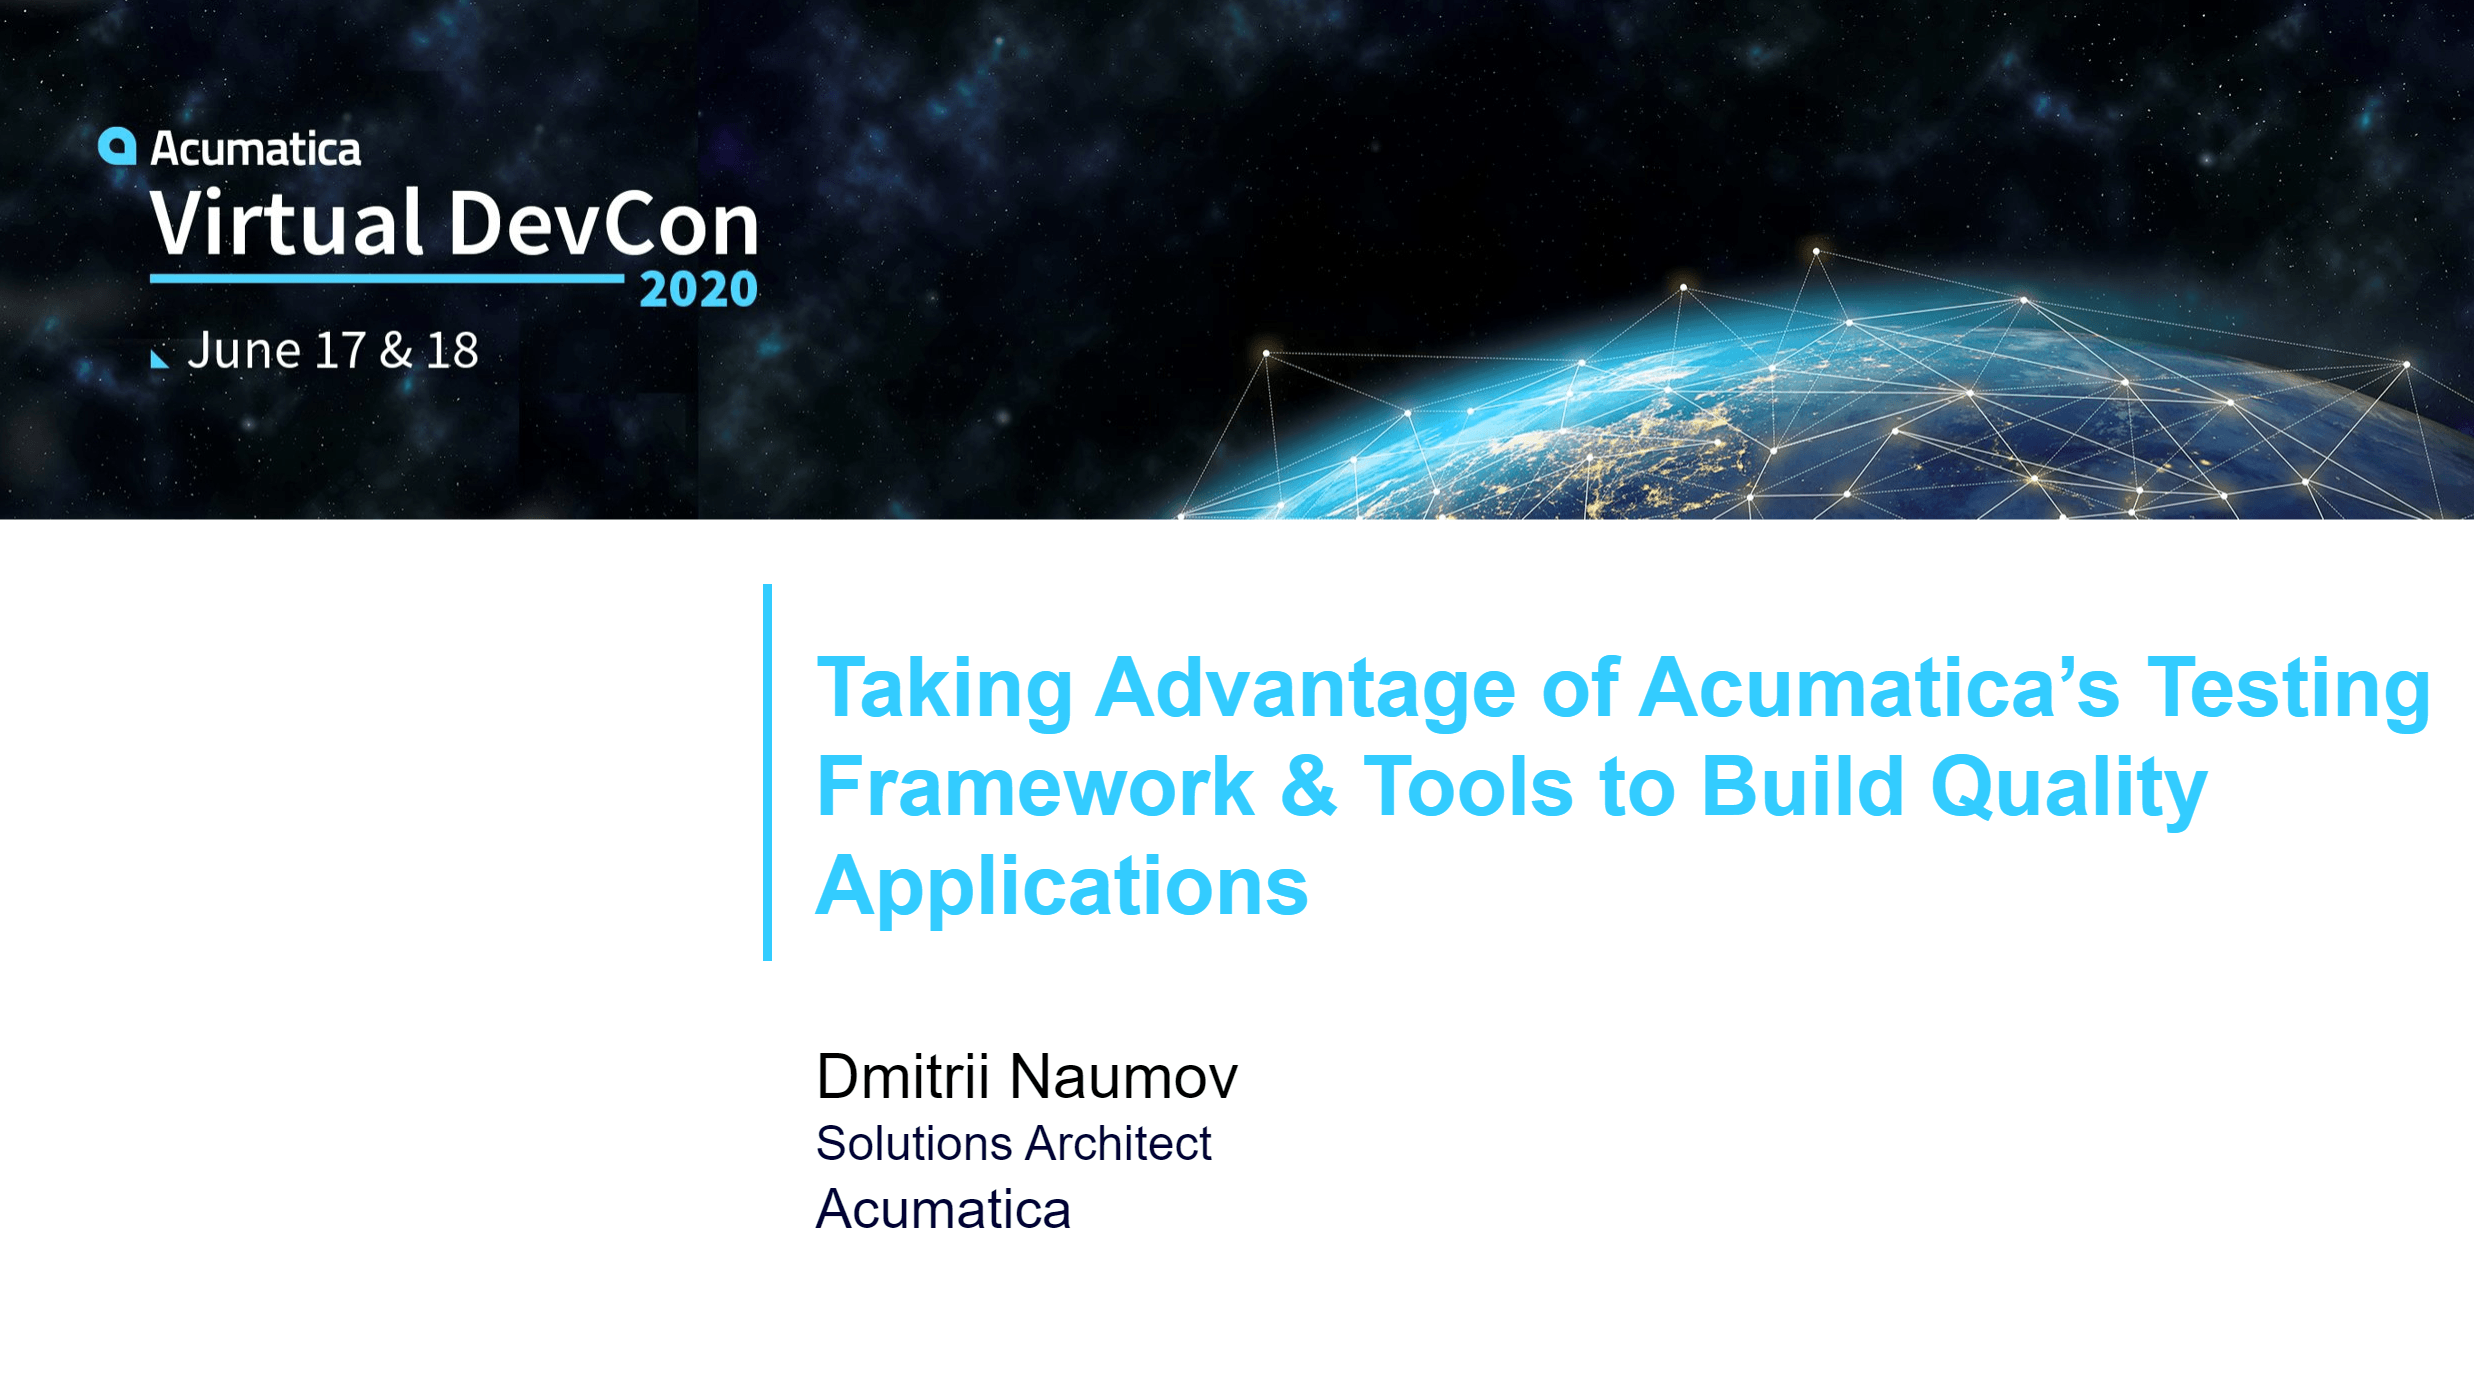 2020 DevCon - Taking Advantage of our Testing Framework & Tools to build Quality Applications